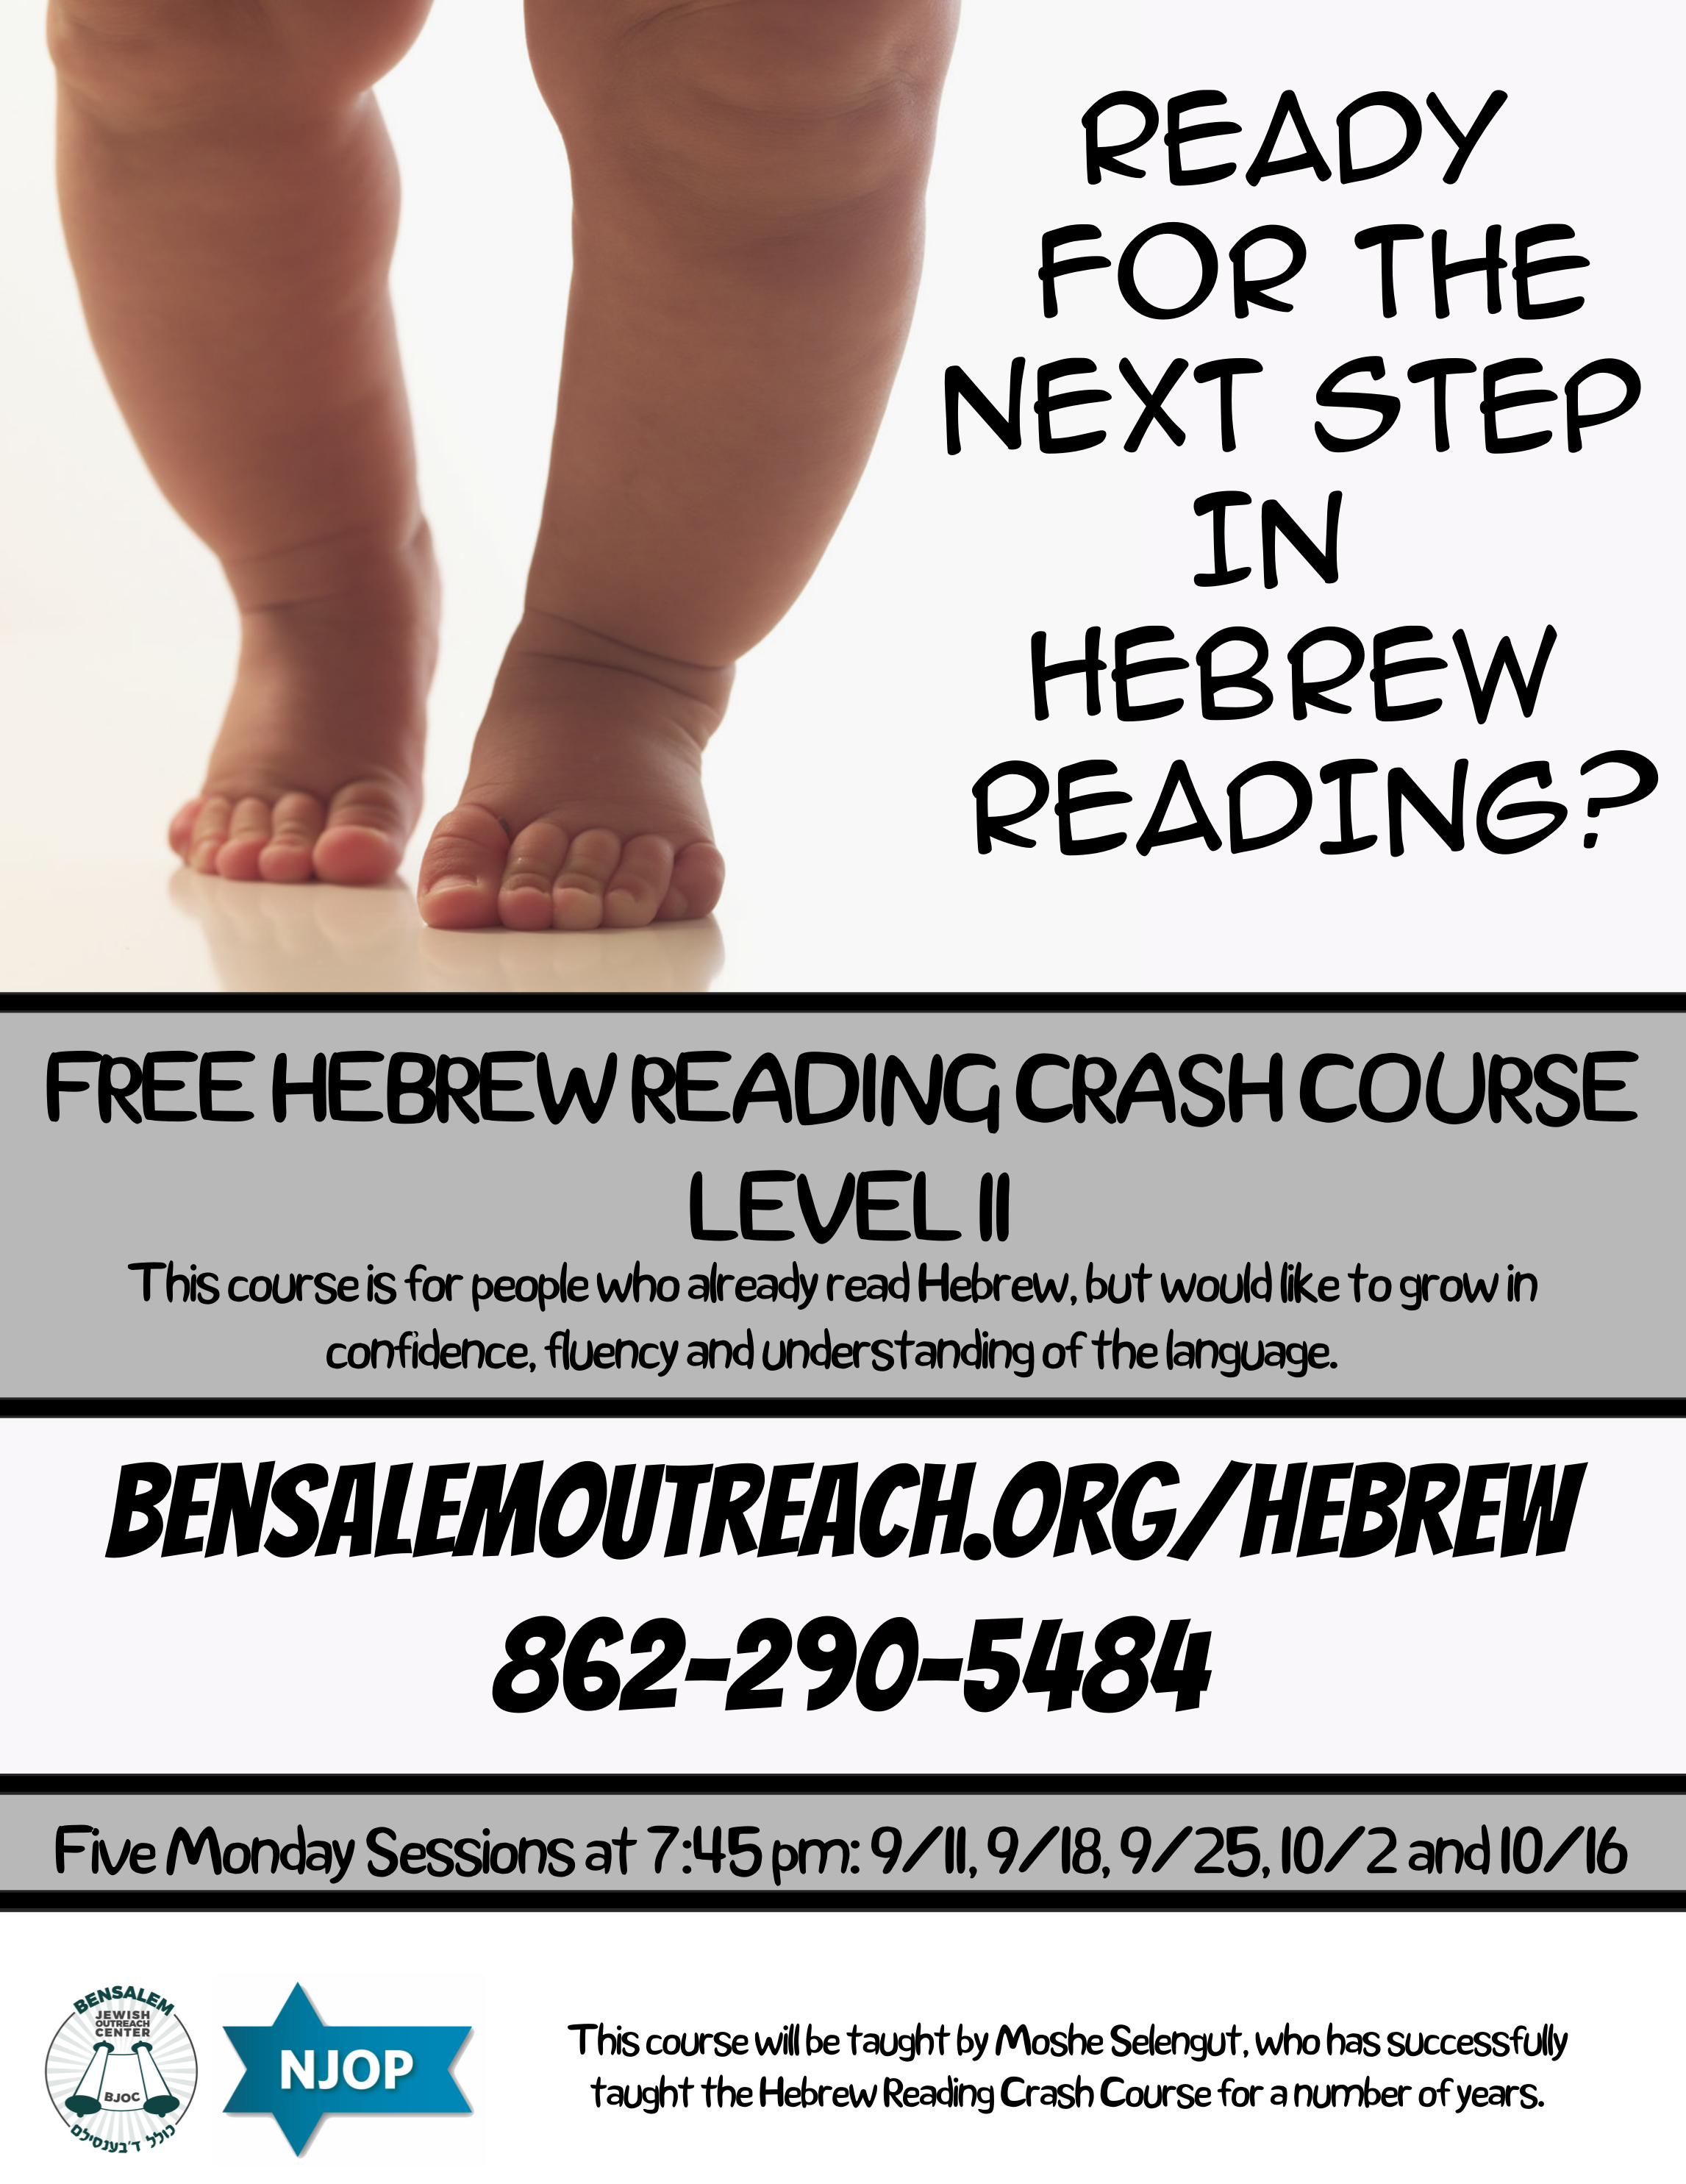 Crash Course in Hebrew Reading Level II